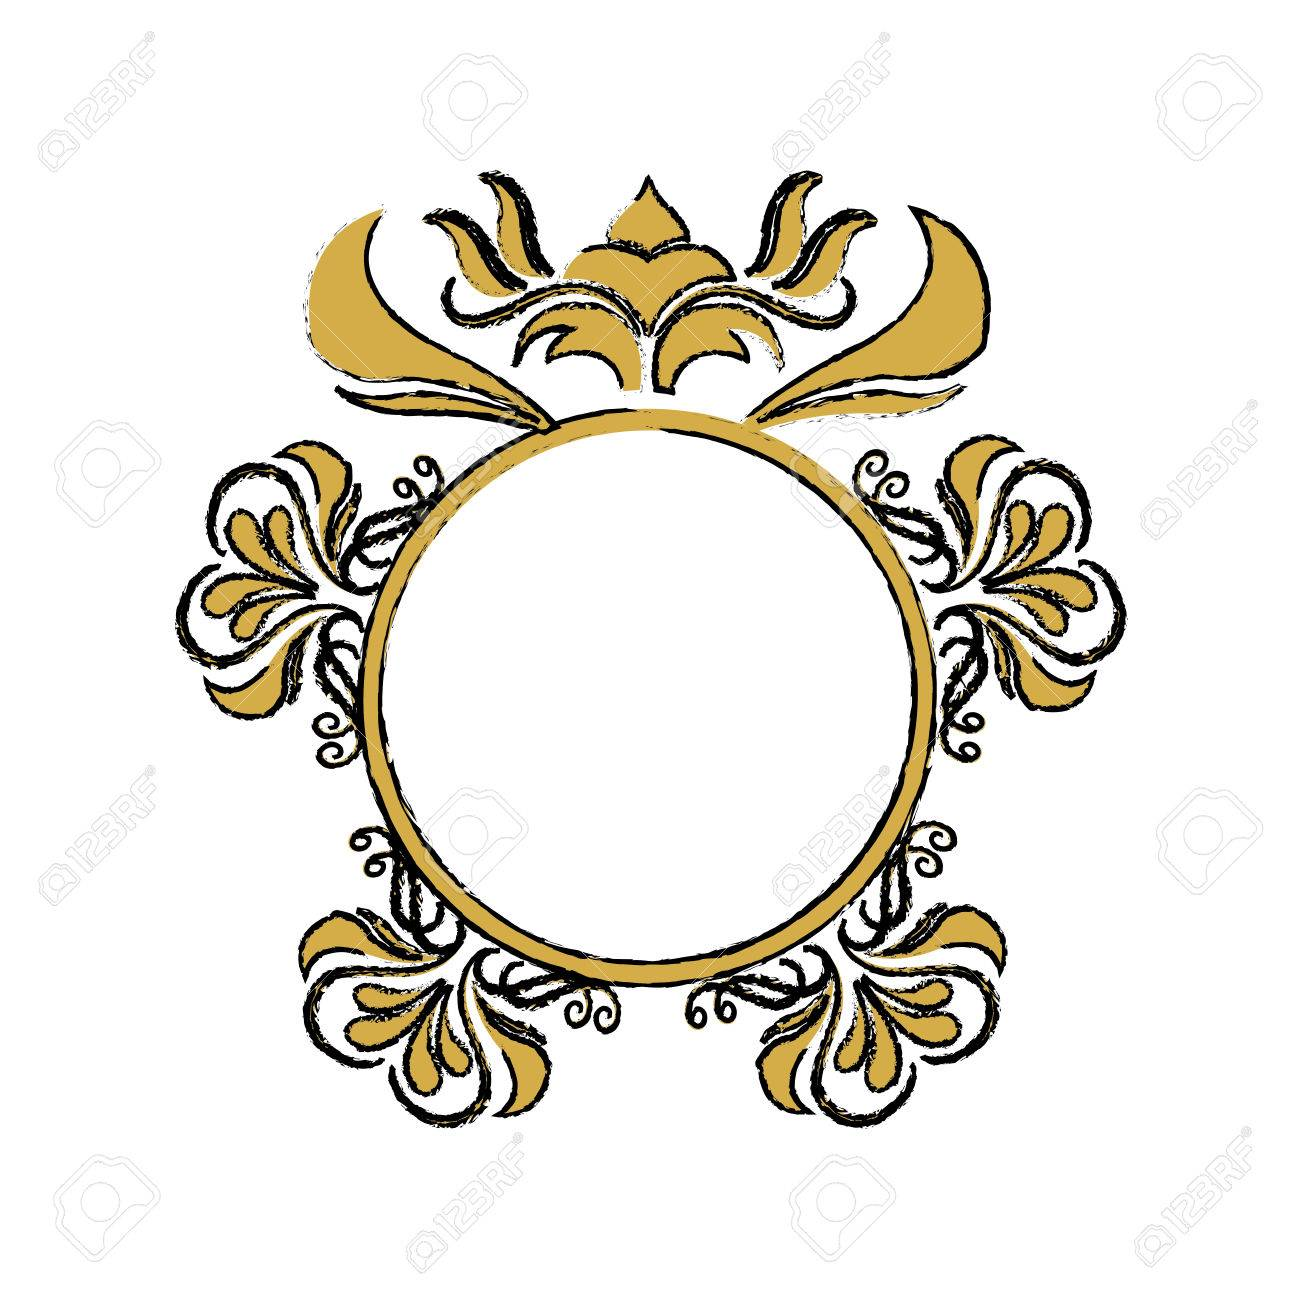 Floral Frame Border Decorative Design Element And Fancy Ornament